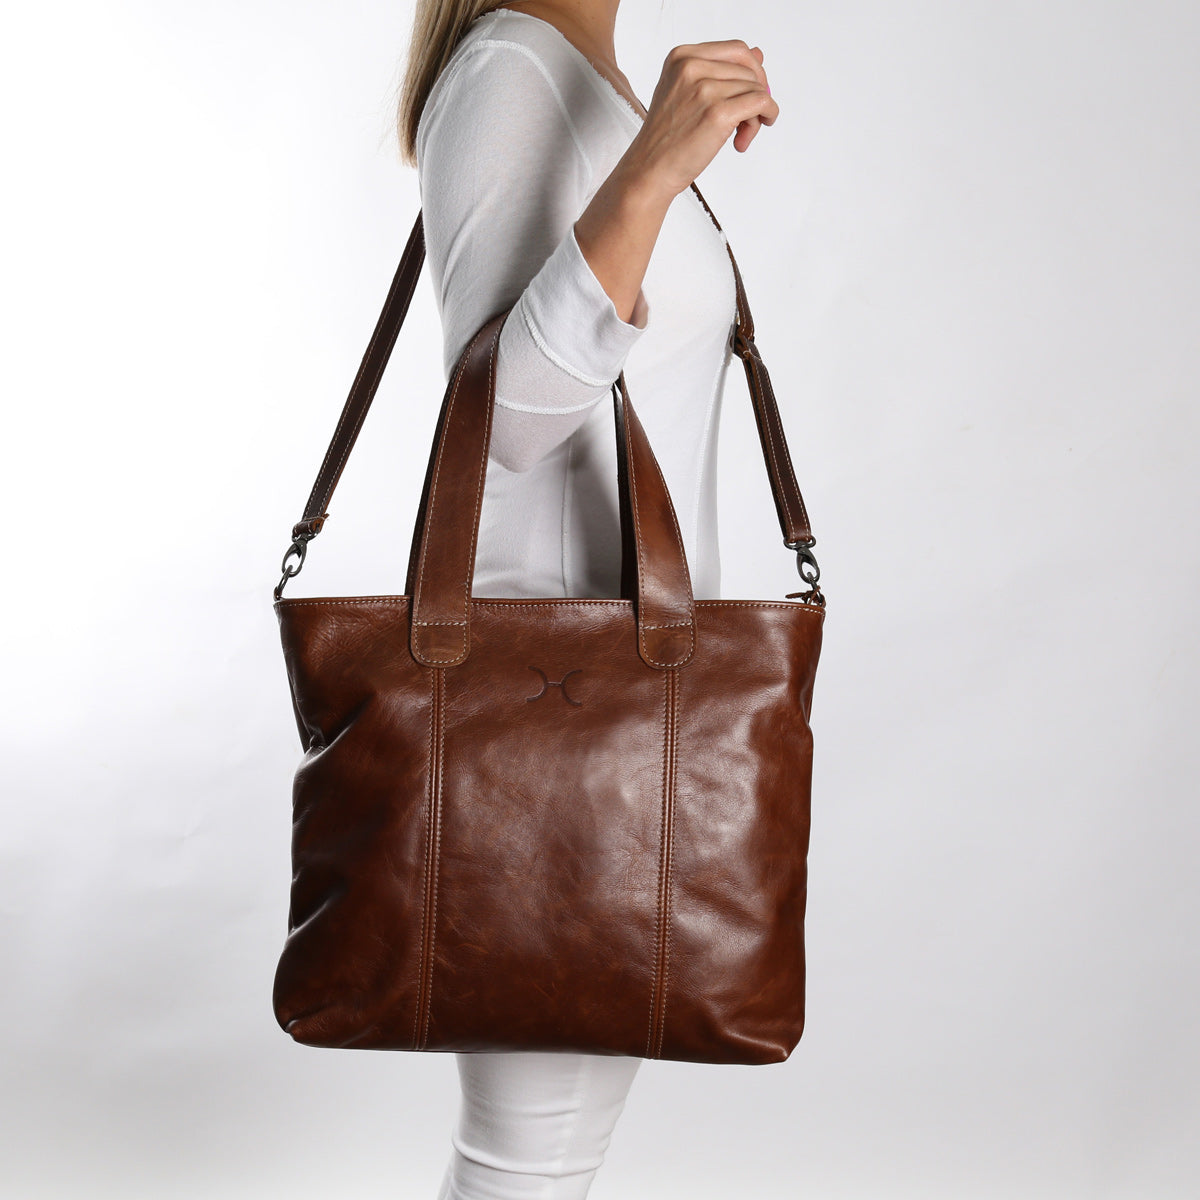 Thandana Jax Handbag - Hazelnut - Zufrique Boutique